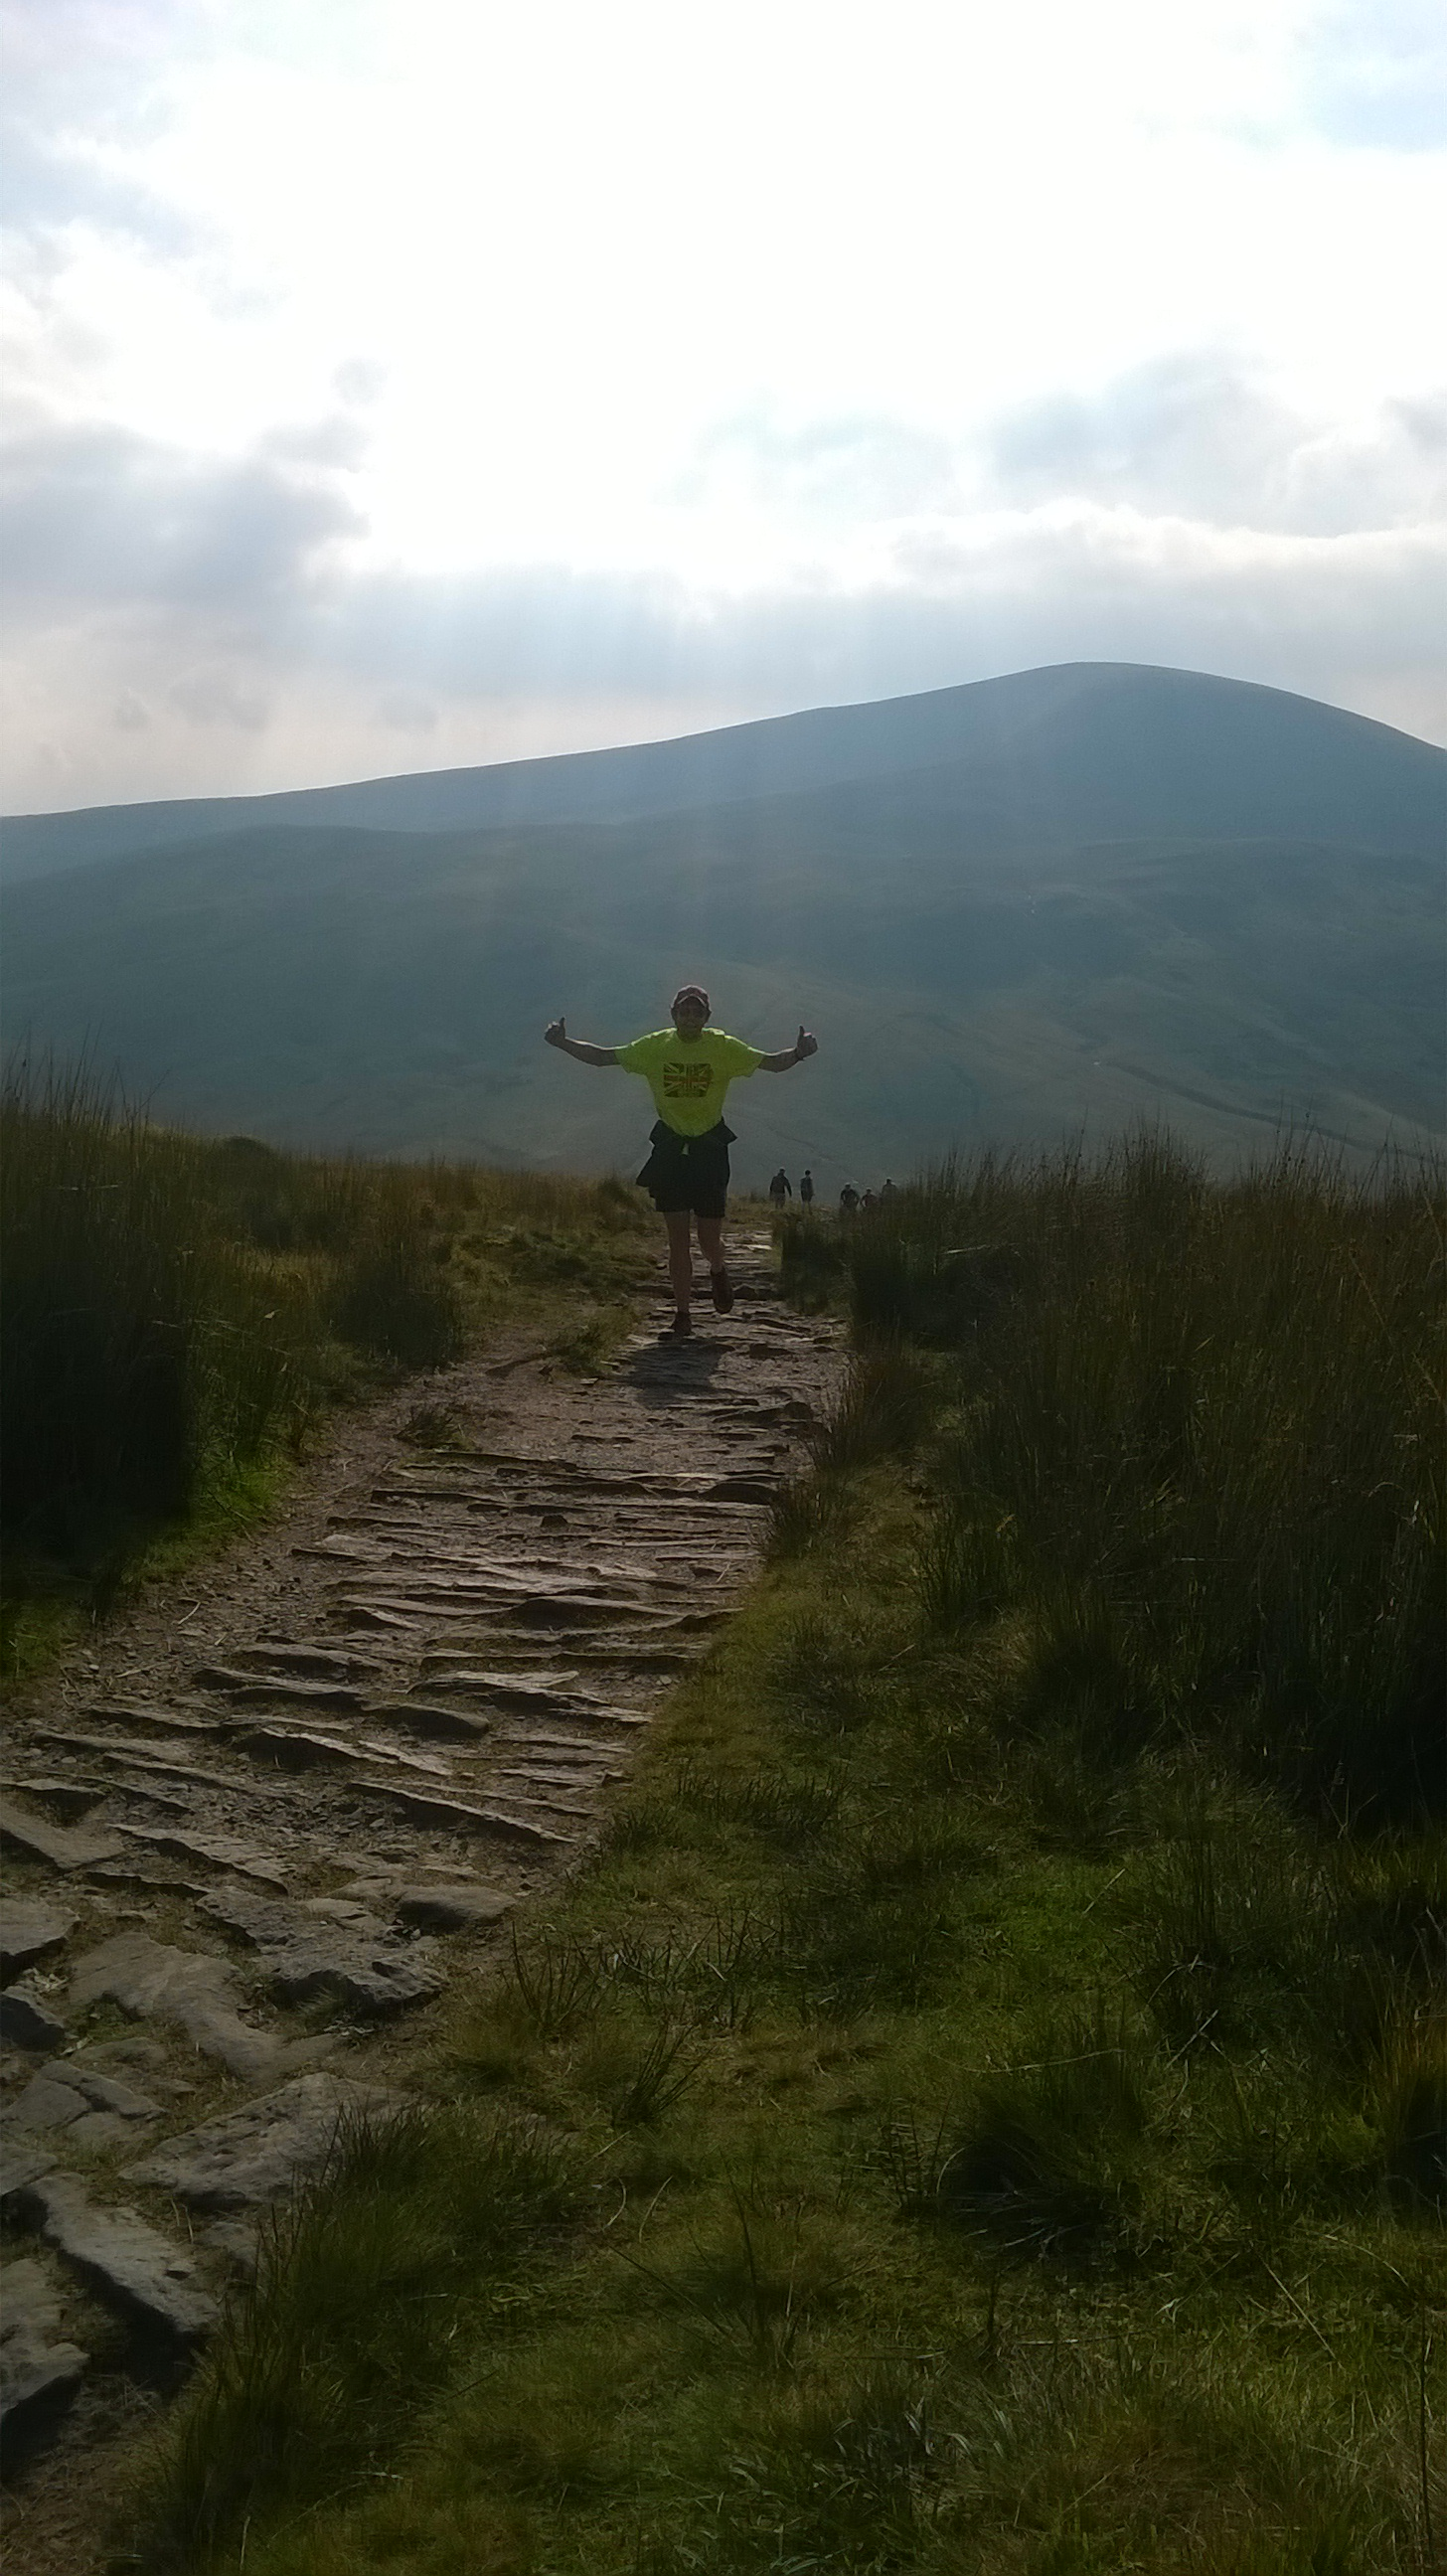 Jools on 'cool down' run up Corn Du, with Fan Fawr in background